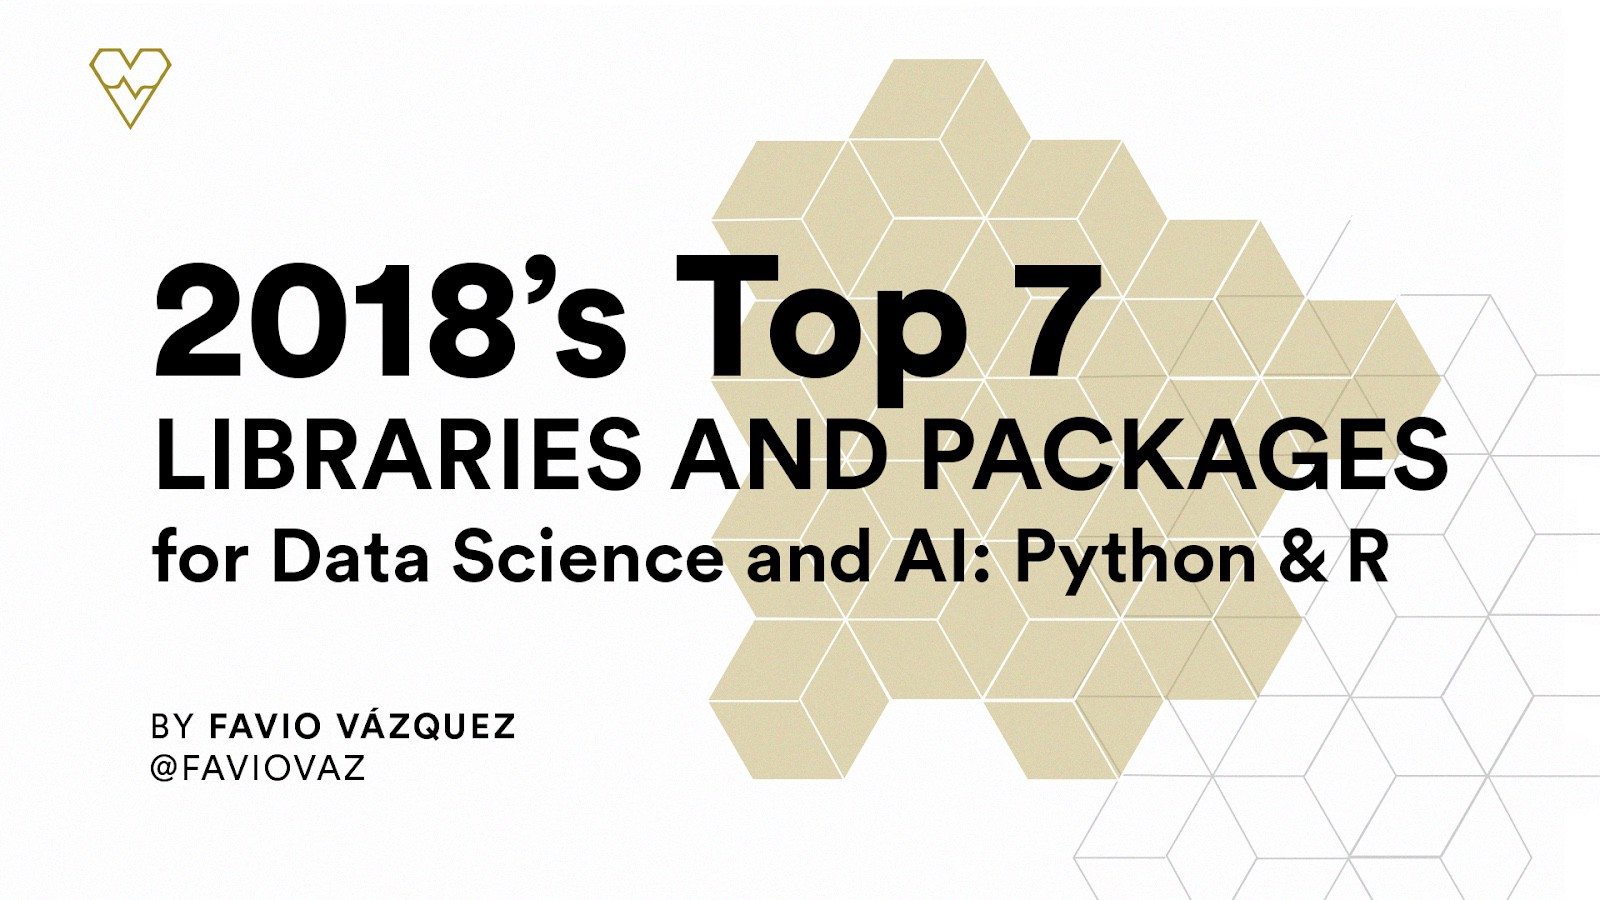 2018's Top 7 Python Libraries for Data Science and AI